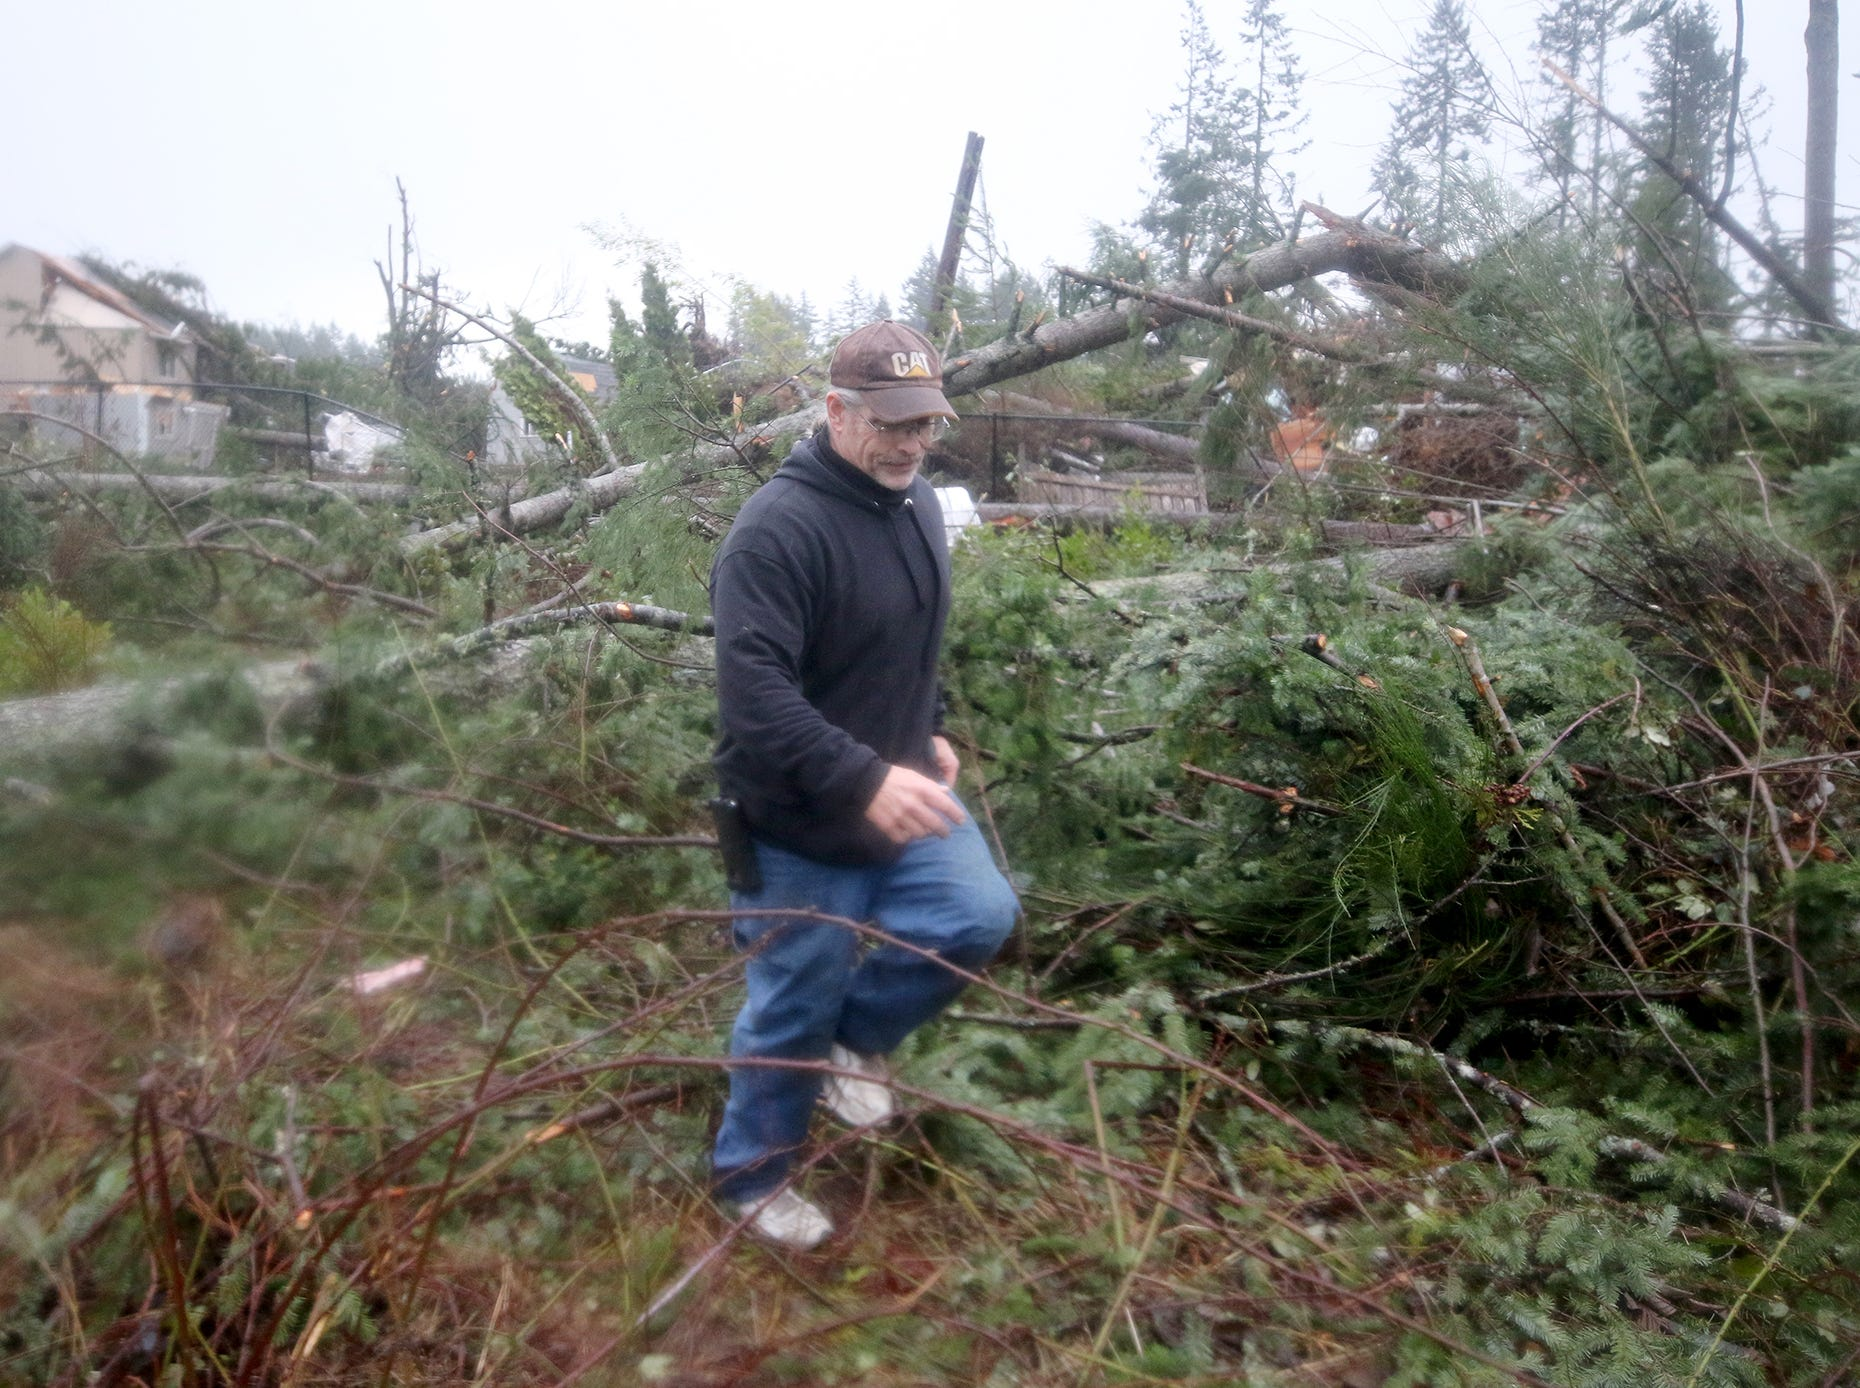 Matt Hargis walks through the downed trees behind Walmart after A tornado came through Port Orchard on the afternoon of Tuesday, December 18, 2018. The path was over Bethel near Walmart, and Safeway. He filmed the tornado from the Safeway.